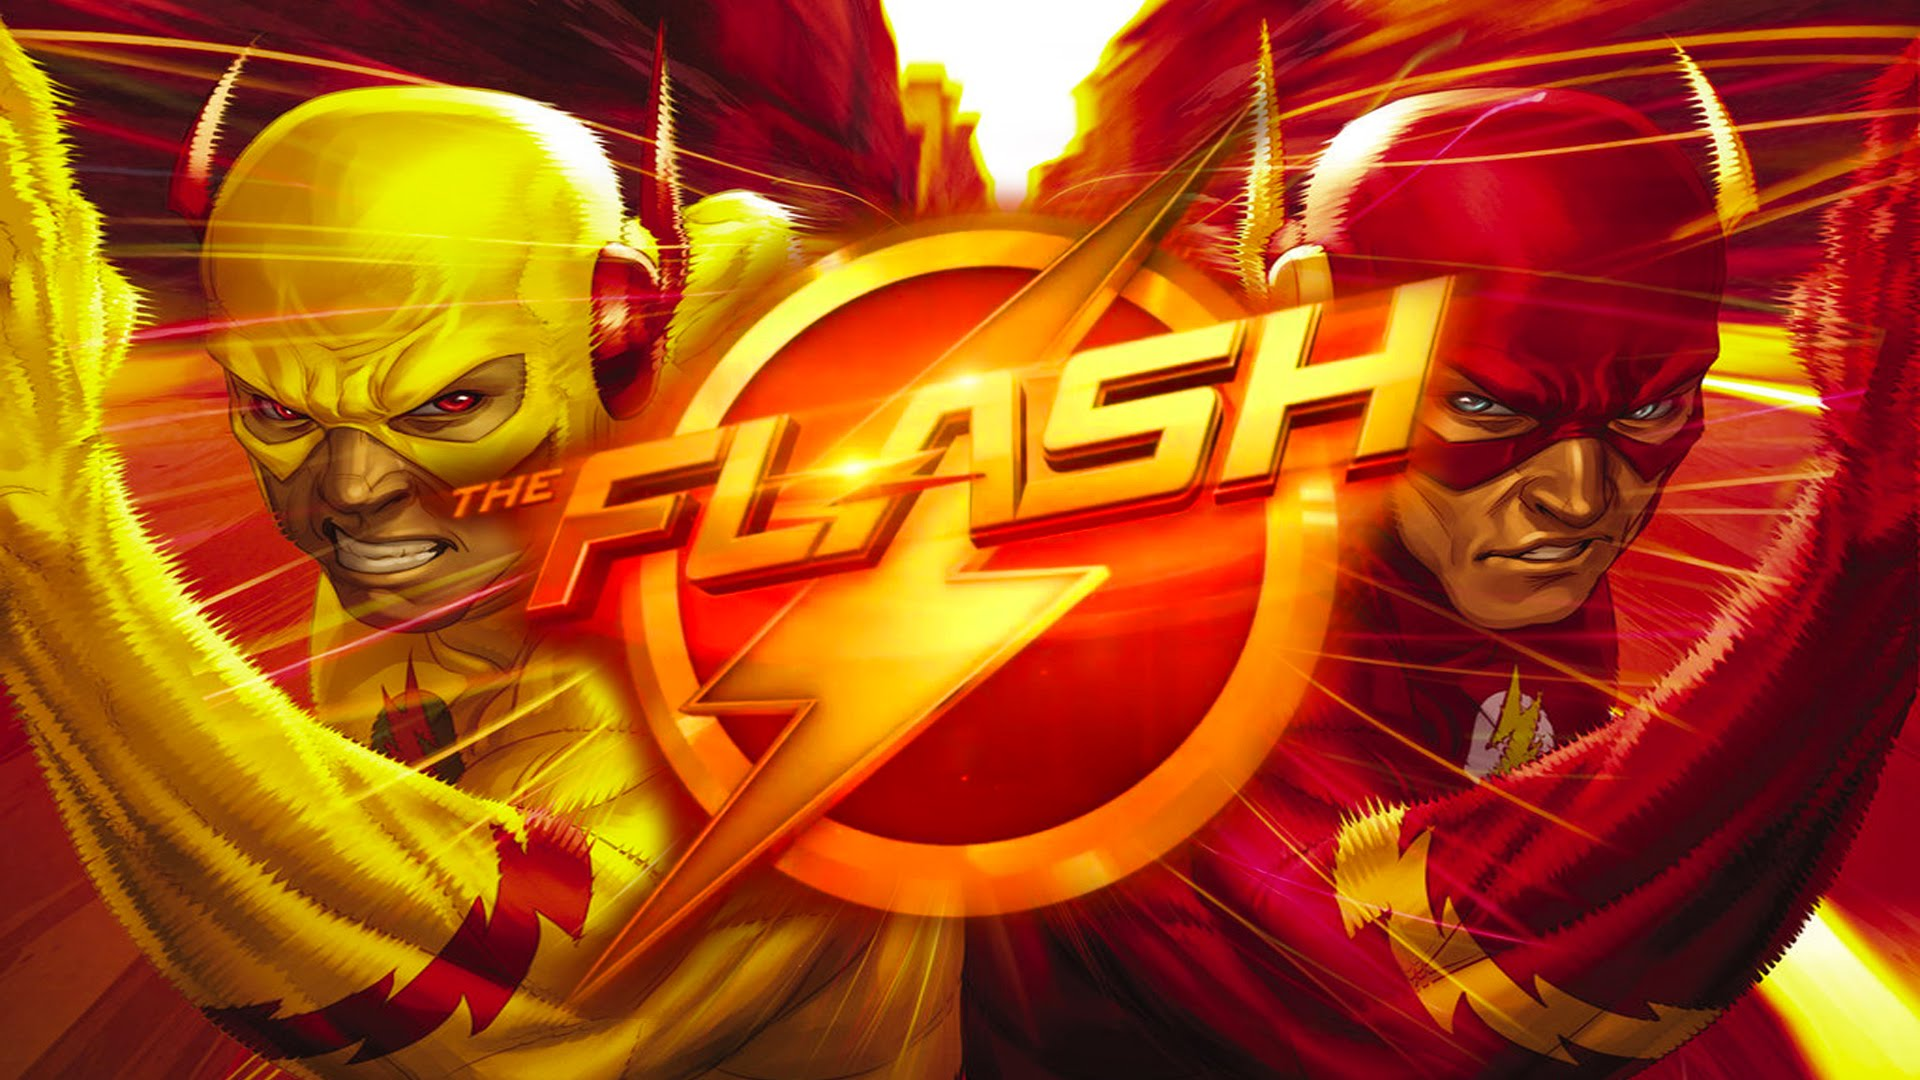 Free Download Flash Vs Reverse Flash Wallpaper 1920x1080 Faster